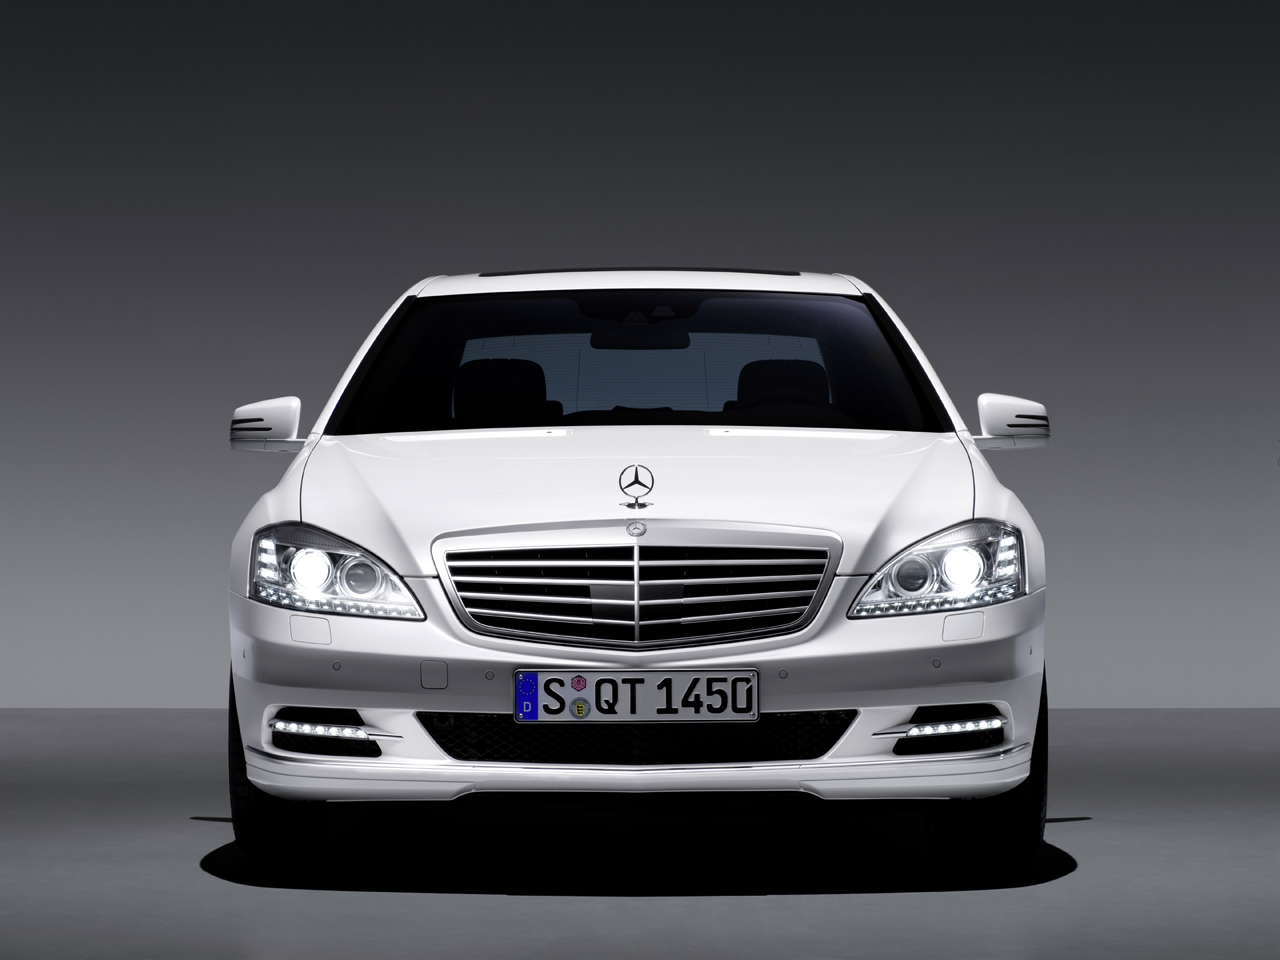 hot car pictures gallery 2010 mercedes benz s class. Black Bedroom Furniture Sets. Home Design Ideas